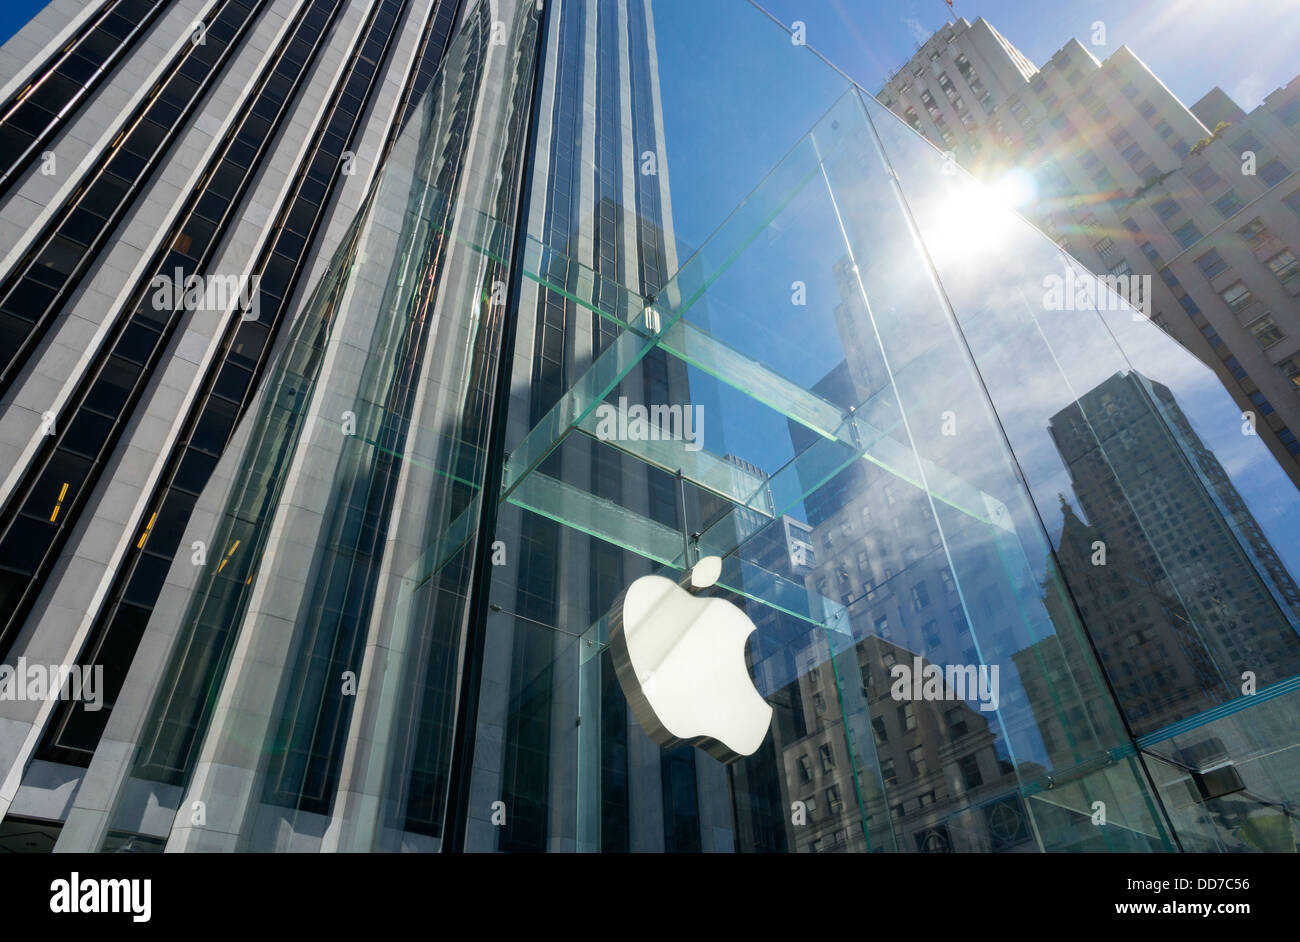 the-fifth-avenue-apple-store-in-new-york